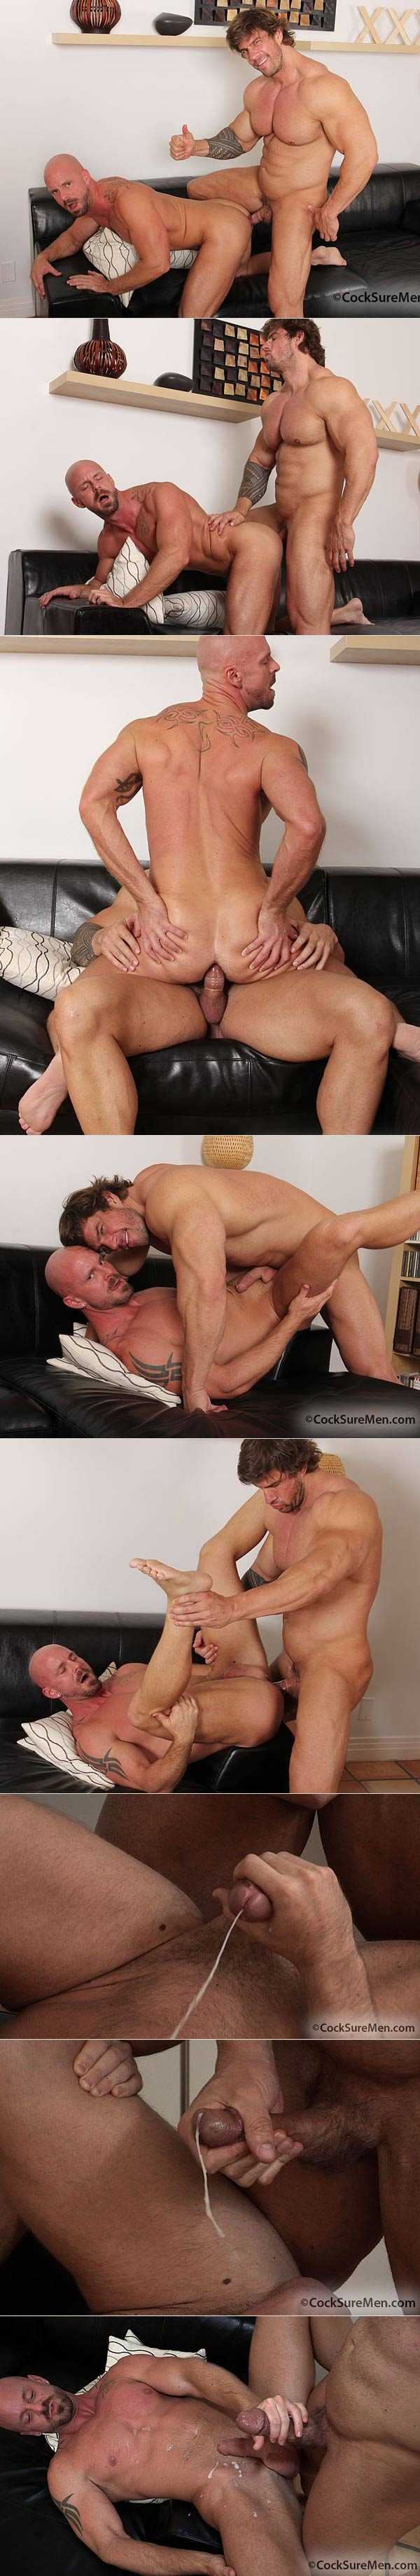 Zeb Atlas & Mitch Vaughn at CocksureMen.com